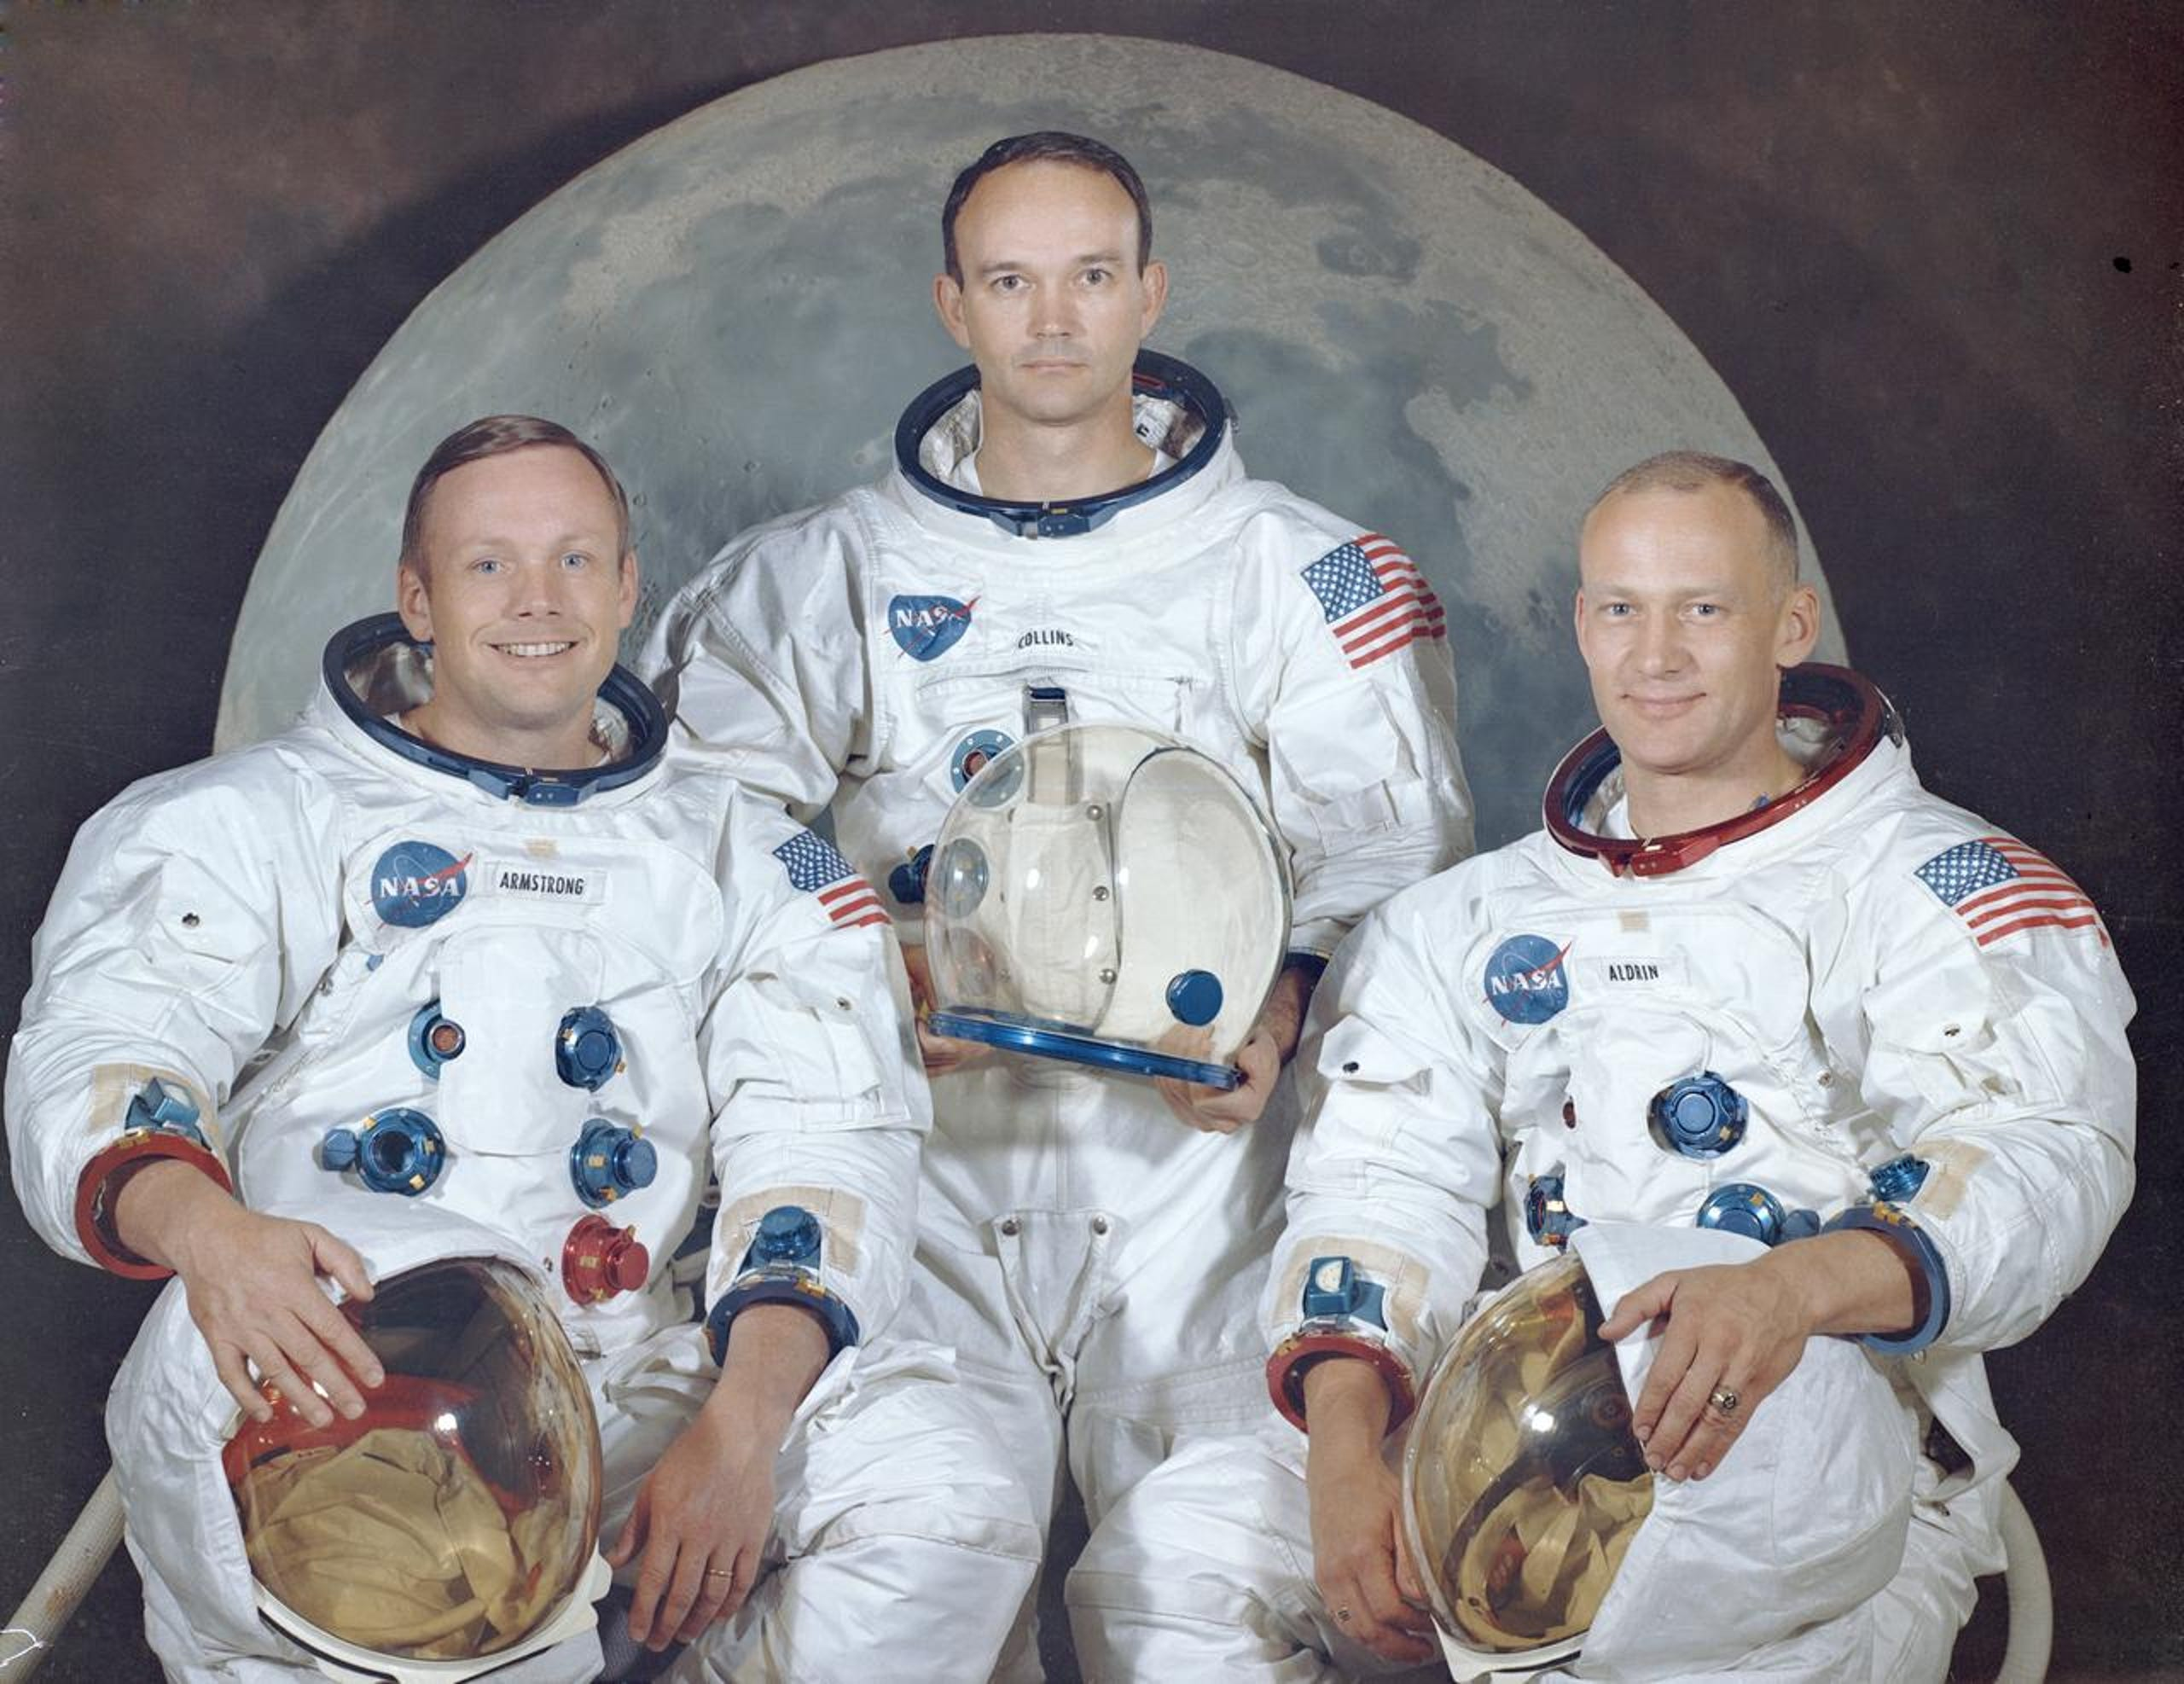 This is the official crew portrait of the Apollo 11 astronauts. Pictured from left to right are: Neil A. Armstrong, Commander; Michael Collins, Module Pilot; Edwin E.